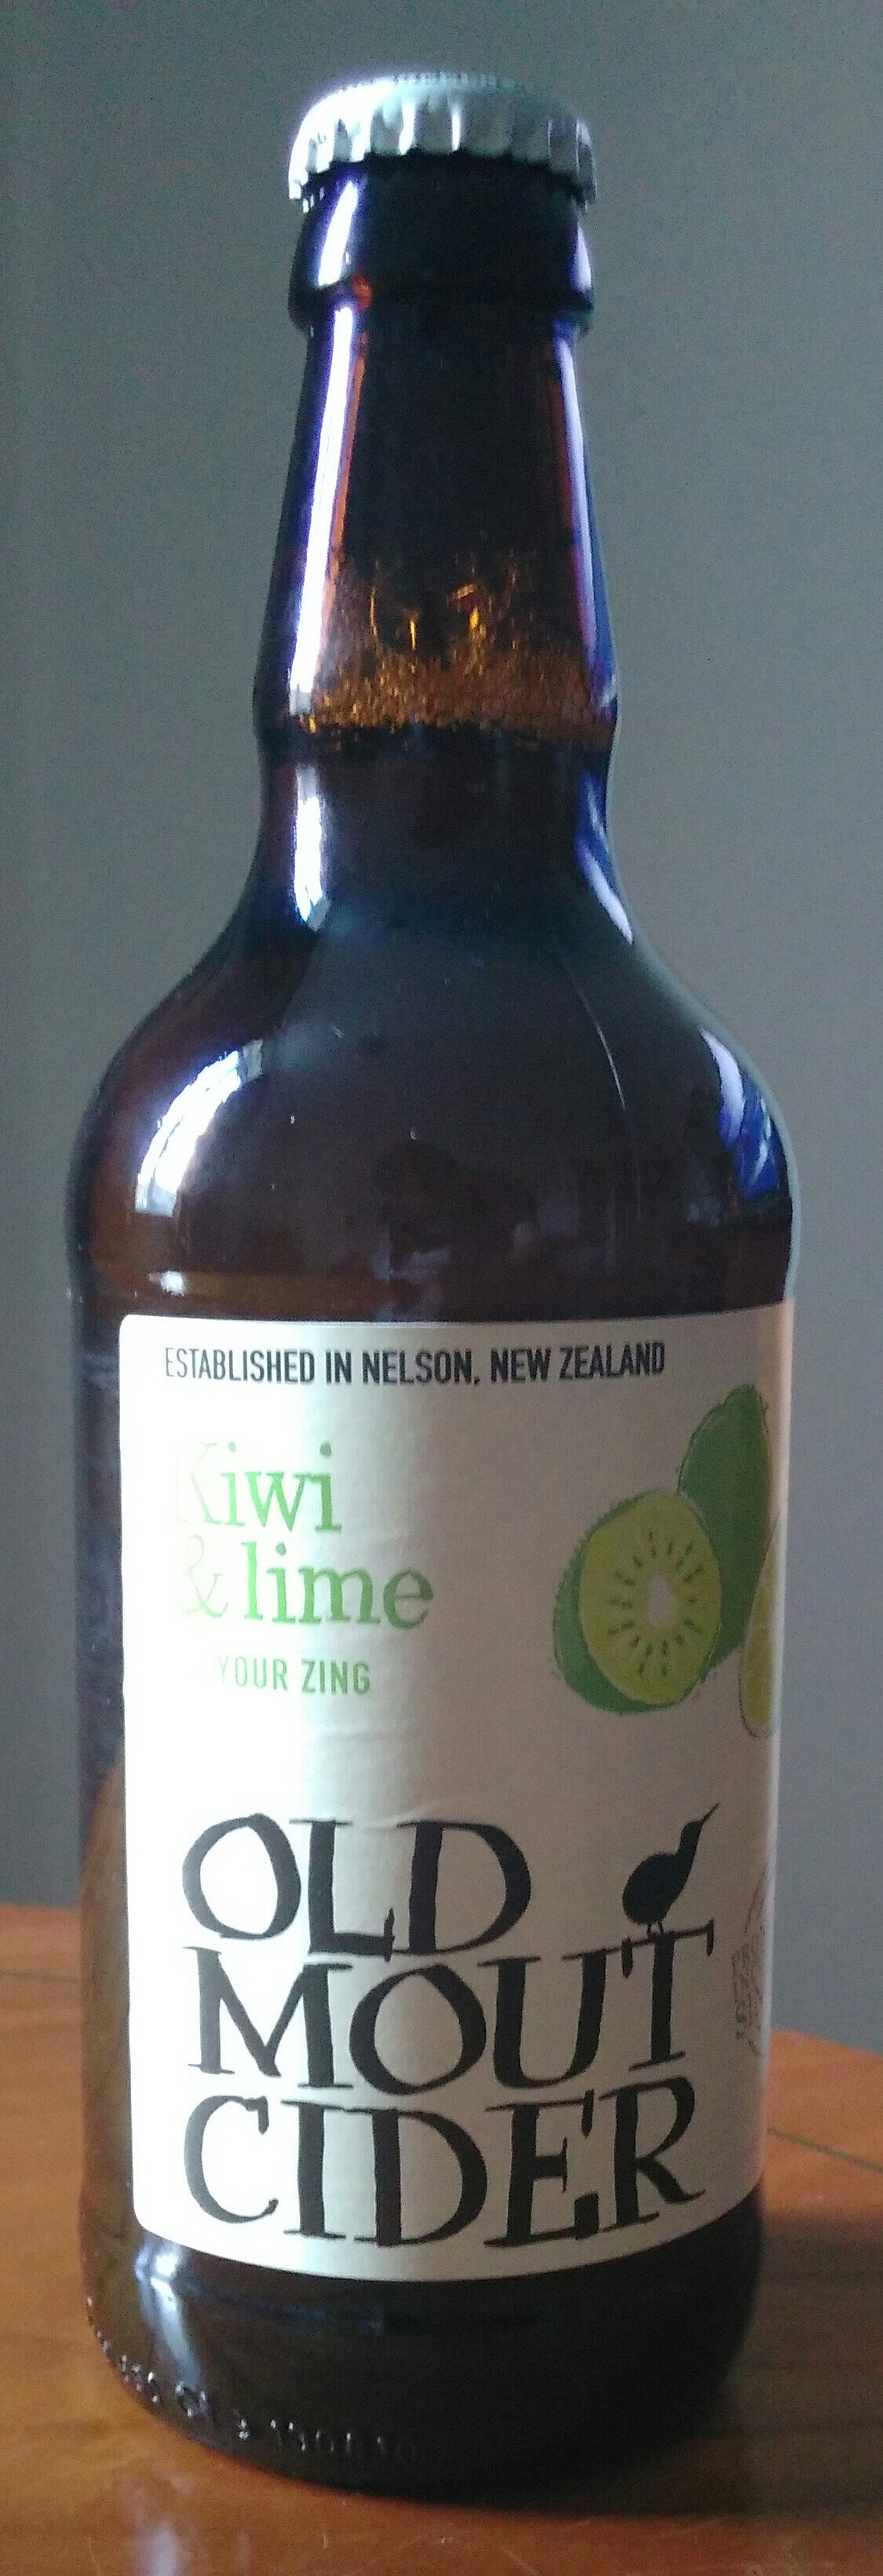 Old Mout Cider Kiwi & Lime - Product